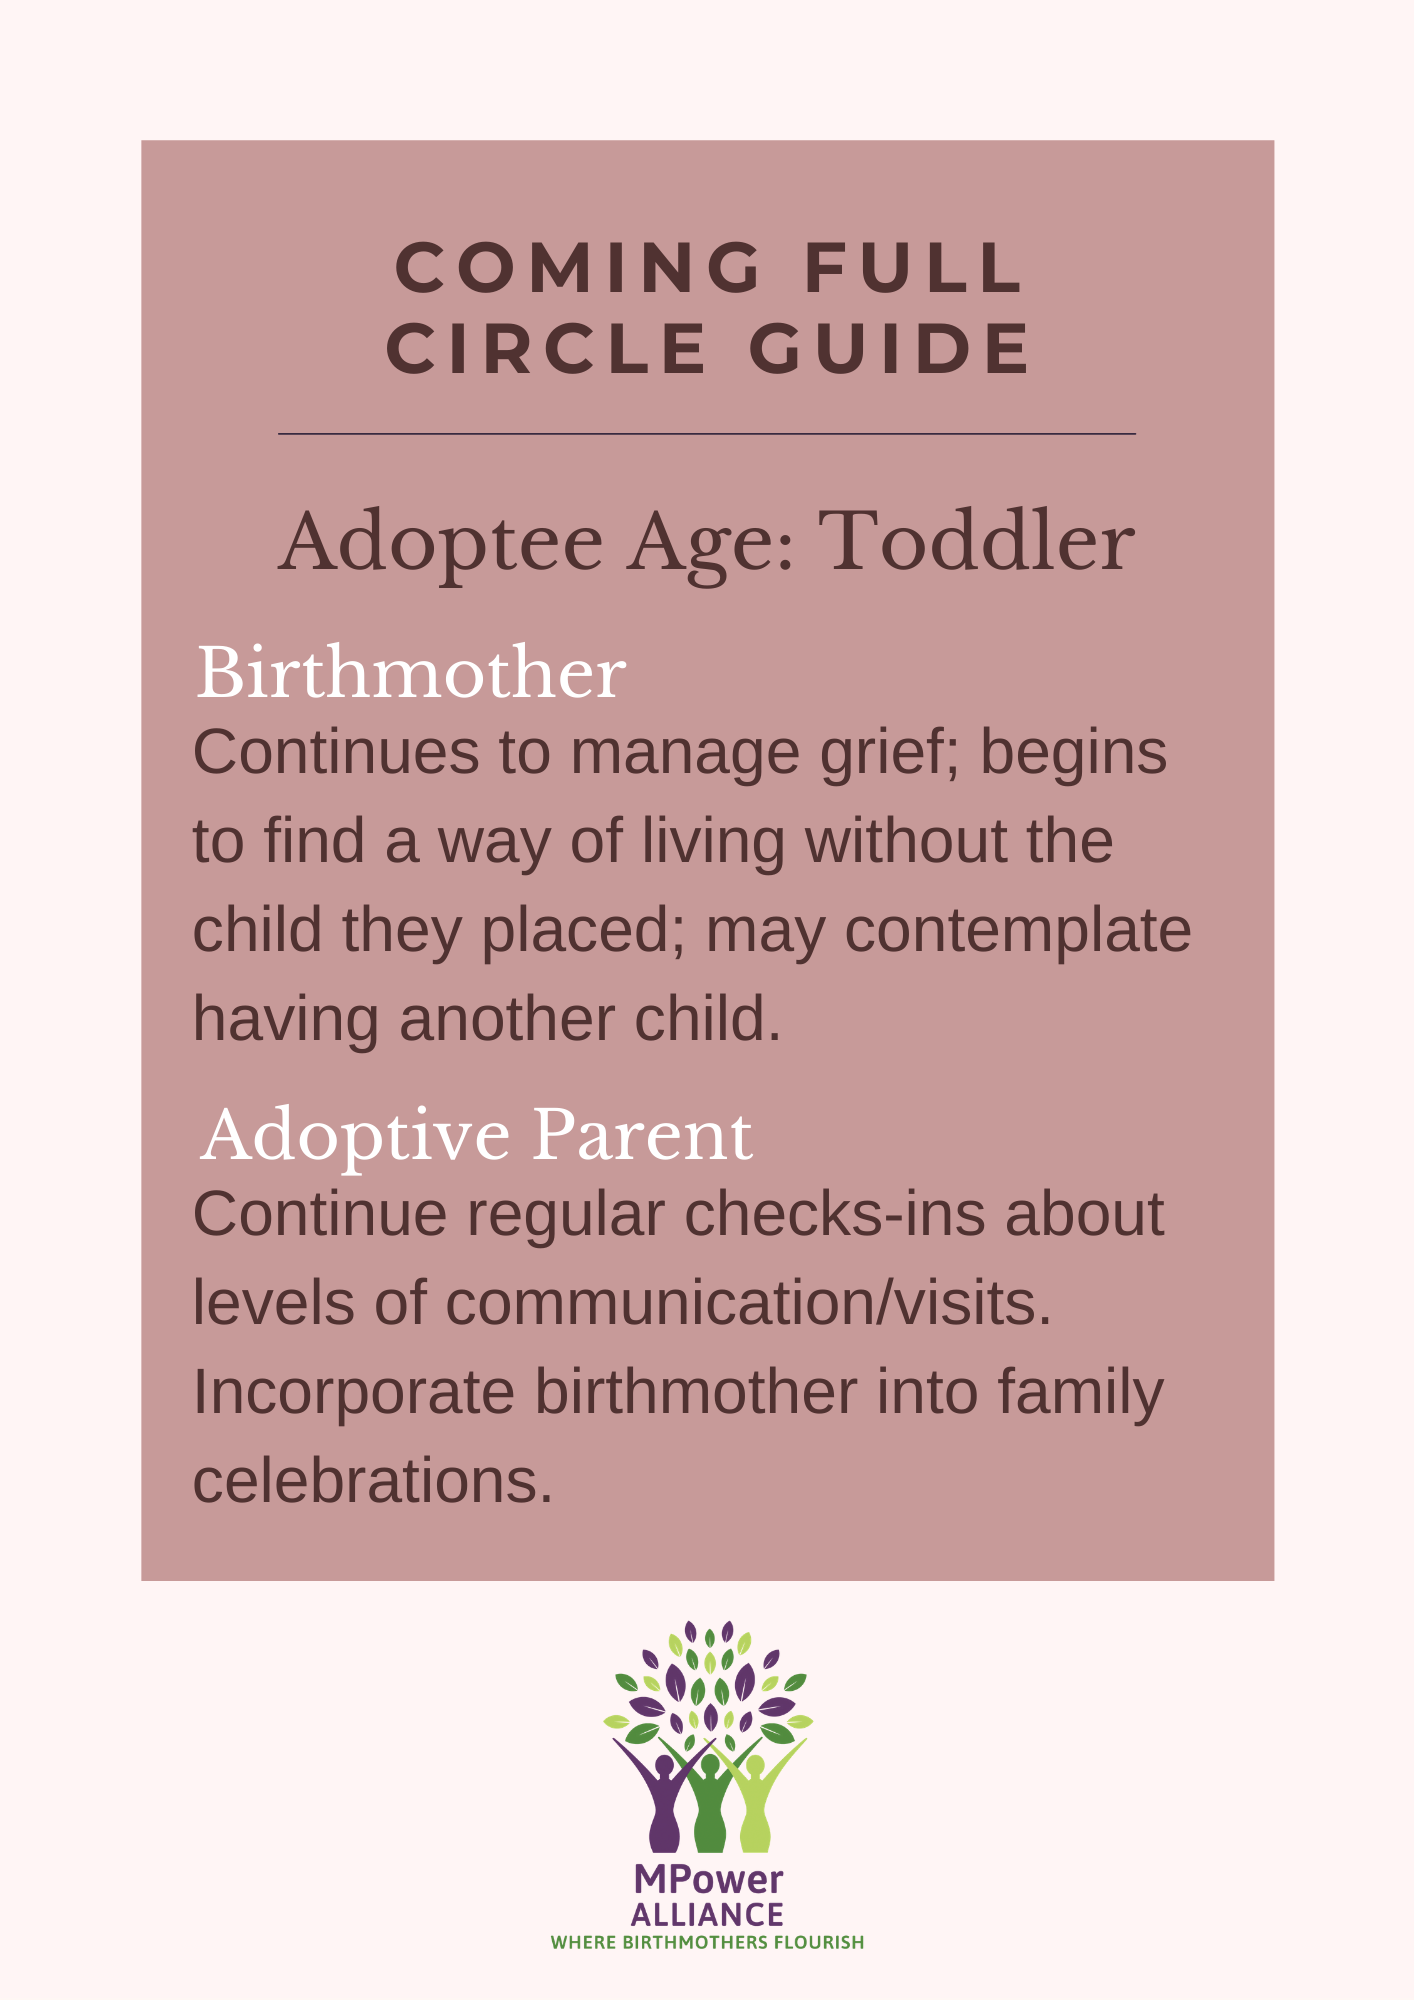 Learn how to best connect with the birthmother of your child in relation to each stage of your child's development.